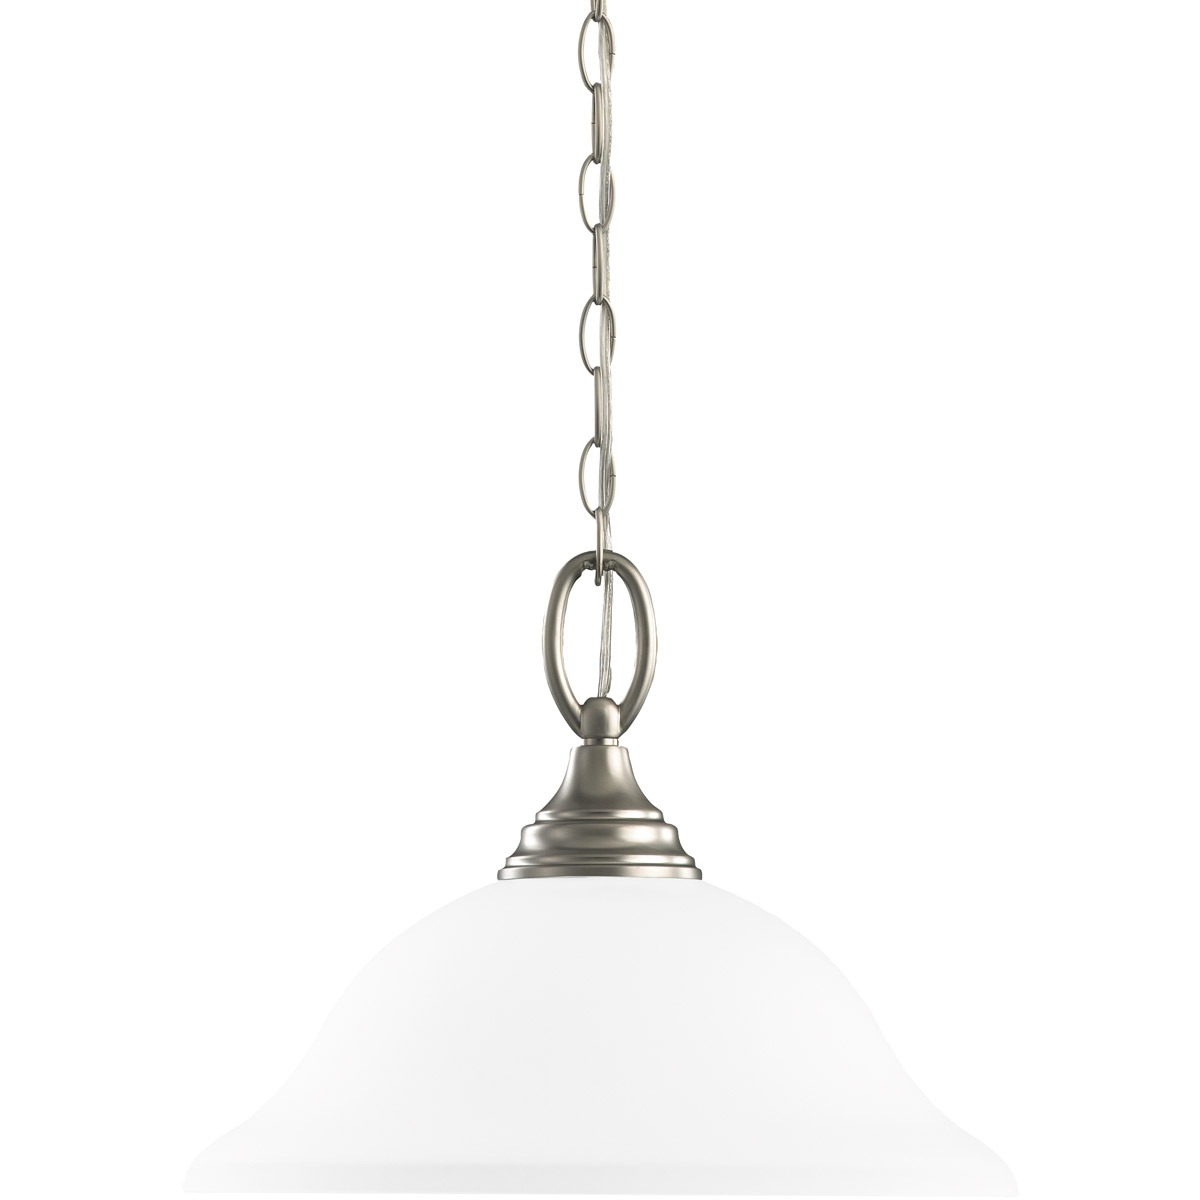 Sea Gull Lighting Wheaton 1 Light Pendant Down Light in Brushed Nickel 65625-962